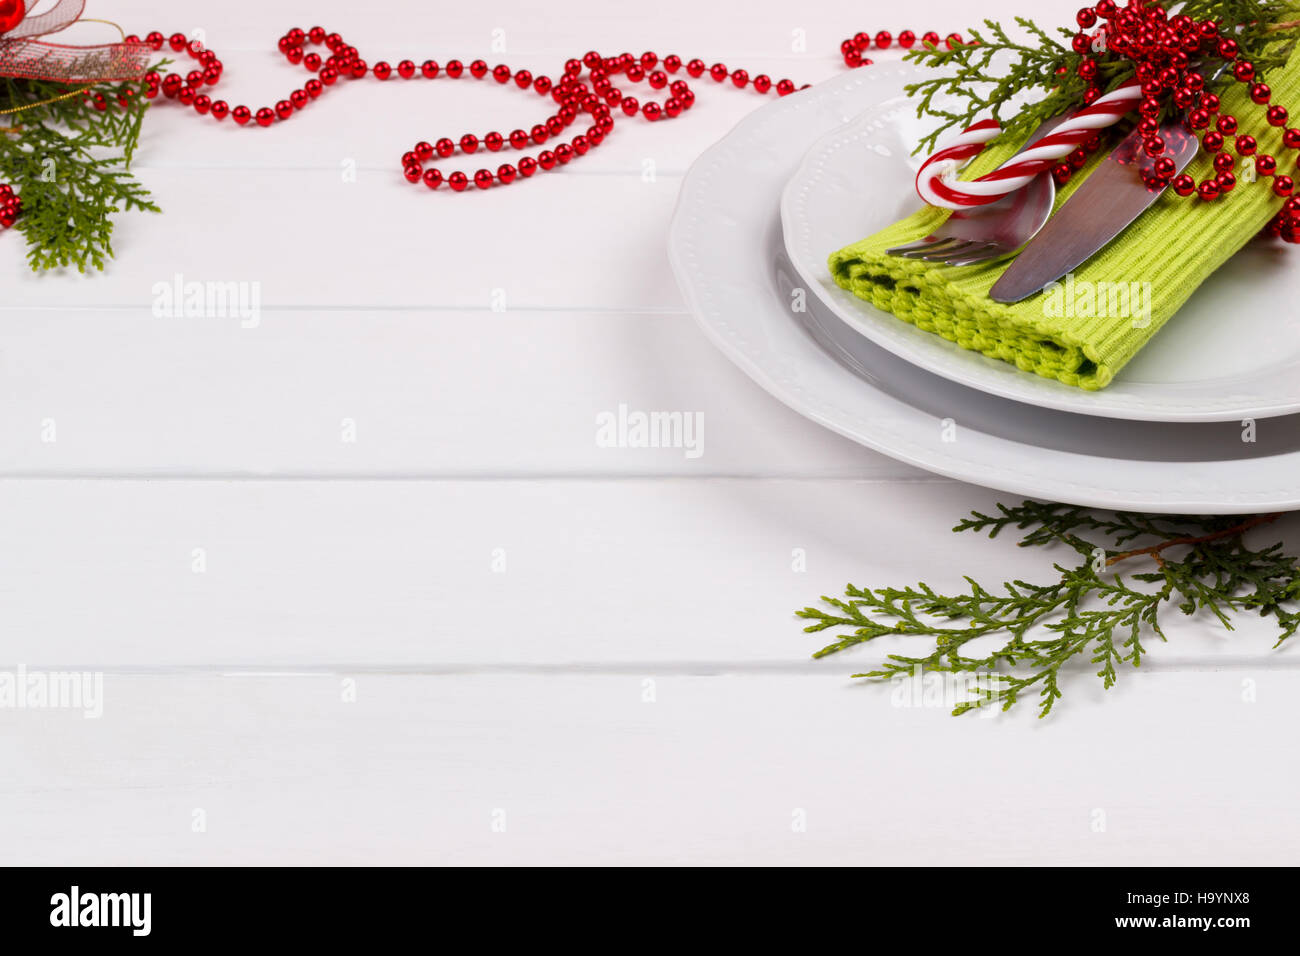 Christmas table setting on white wooden tableristmas card christmas table setting on white wooden tableristmas card template pronofoot35fo Image collections